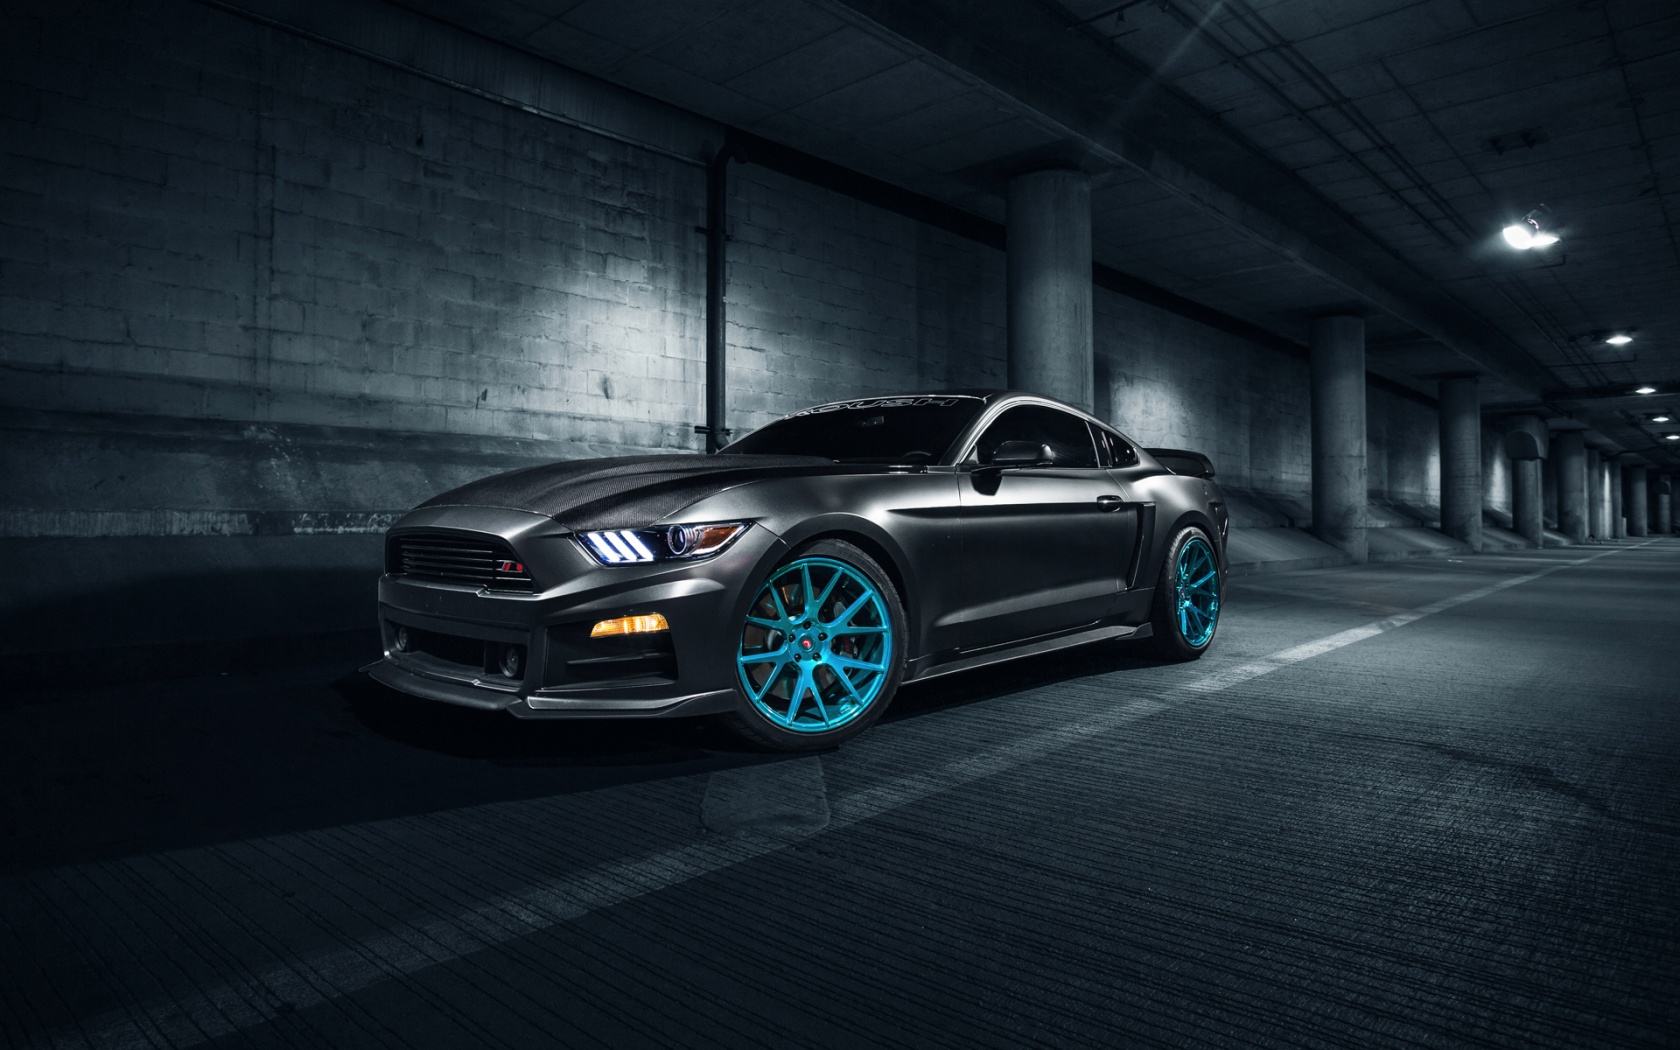 Grau Wallpaper roush performance mustang vossen wheels wallpapers in jpg format for